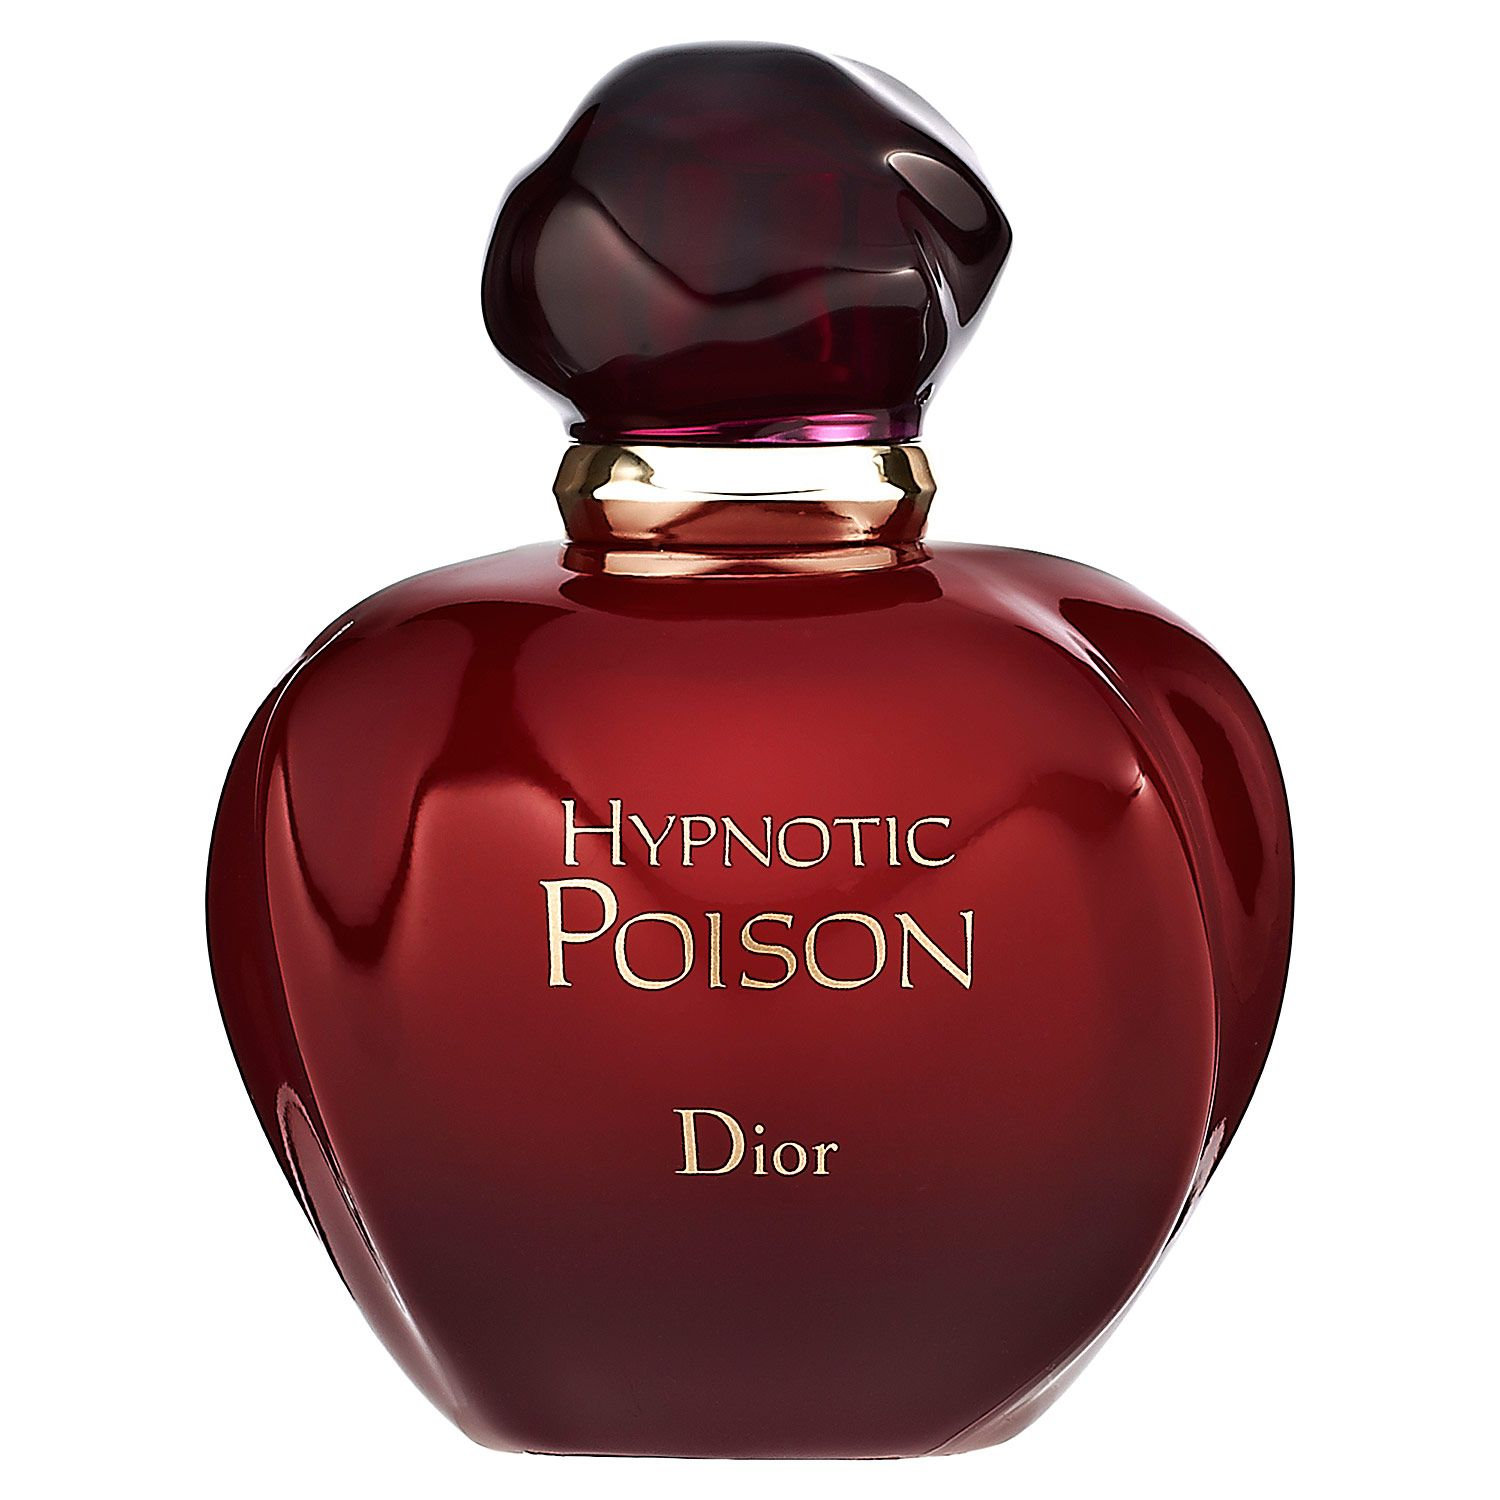 Dior Hypnotic Poison Perfume Is A Mysterious Mesmerizing Magic Casablanca Deodorant Roll On Dark Green For Men 50ml Potion Modern Times Get Free 3 Day Ship With Your Order At